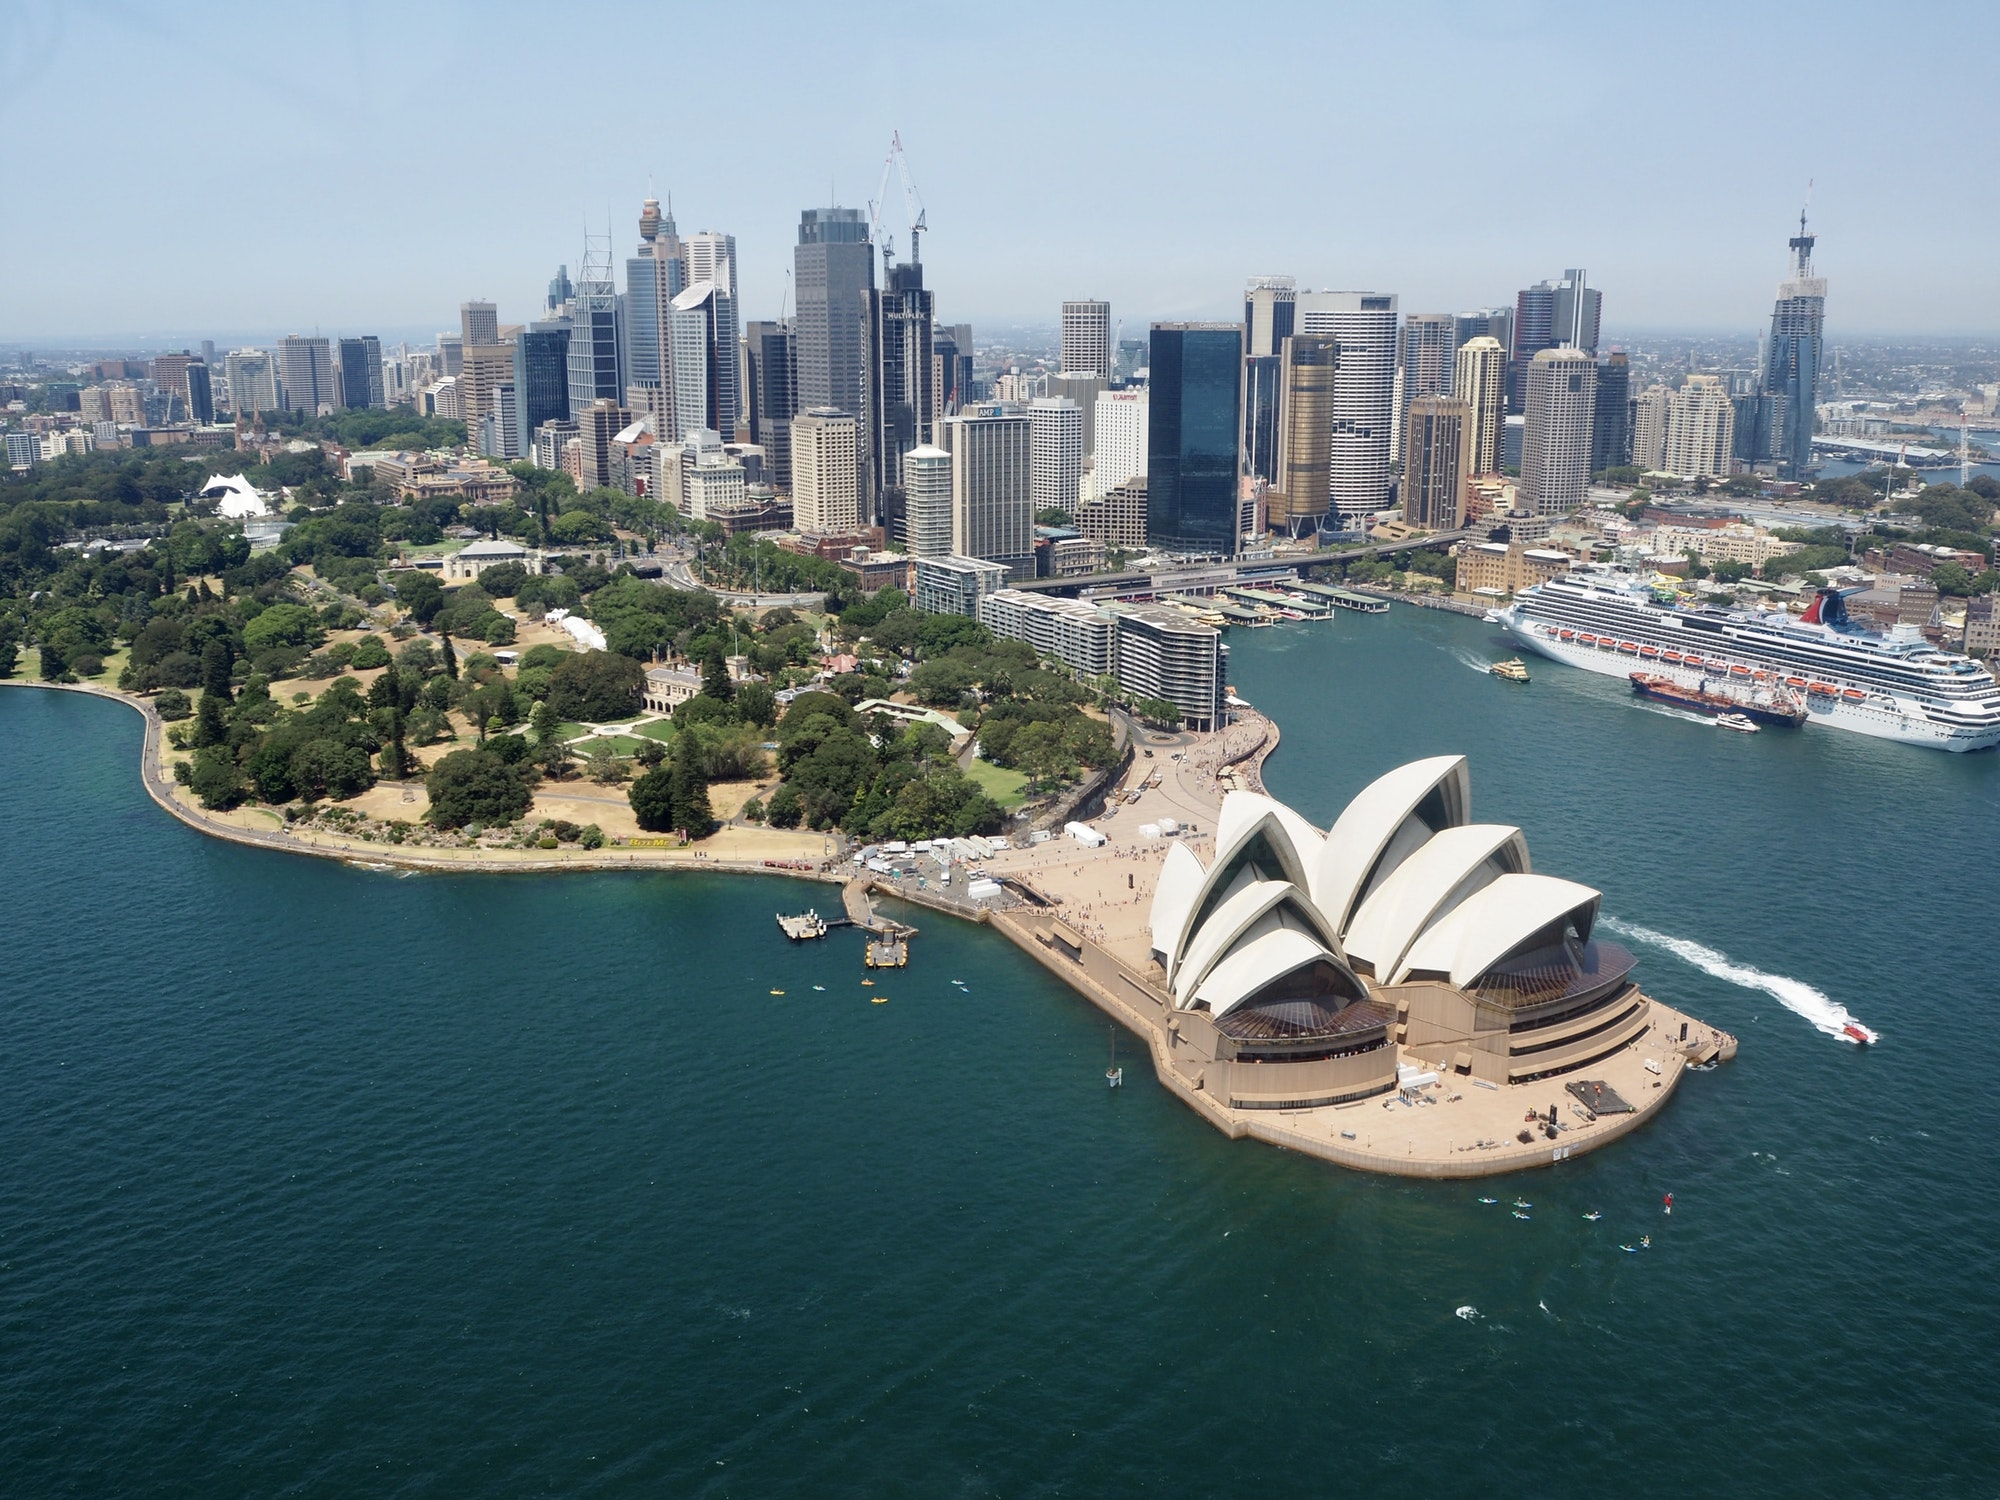 View of Sydney Opera house from the air and city skyline